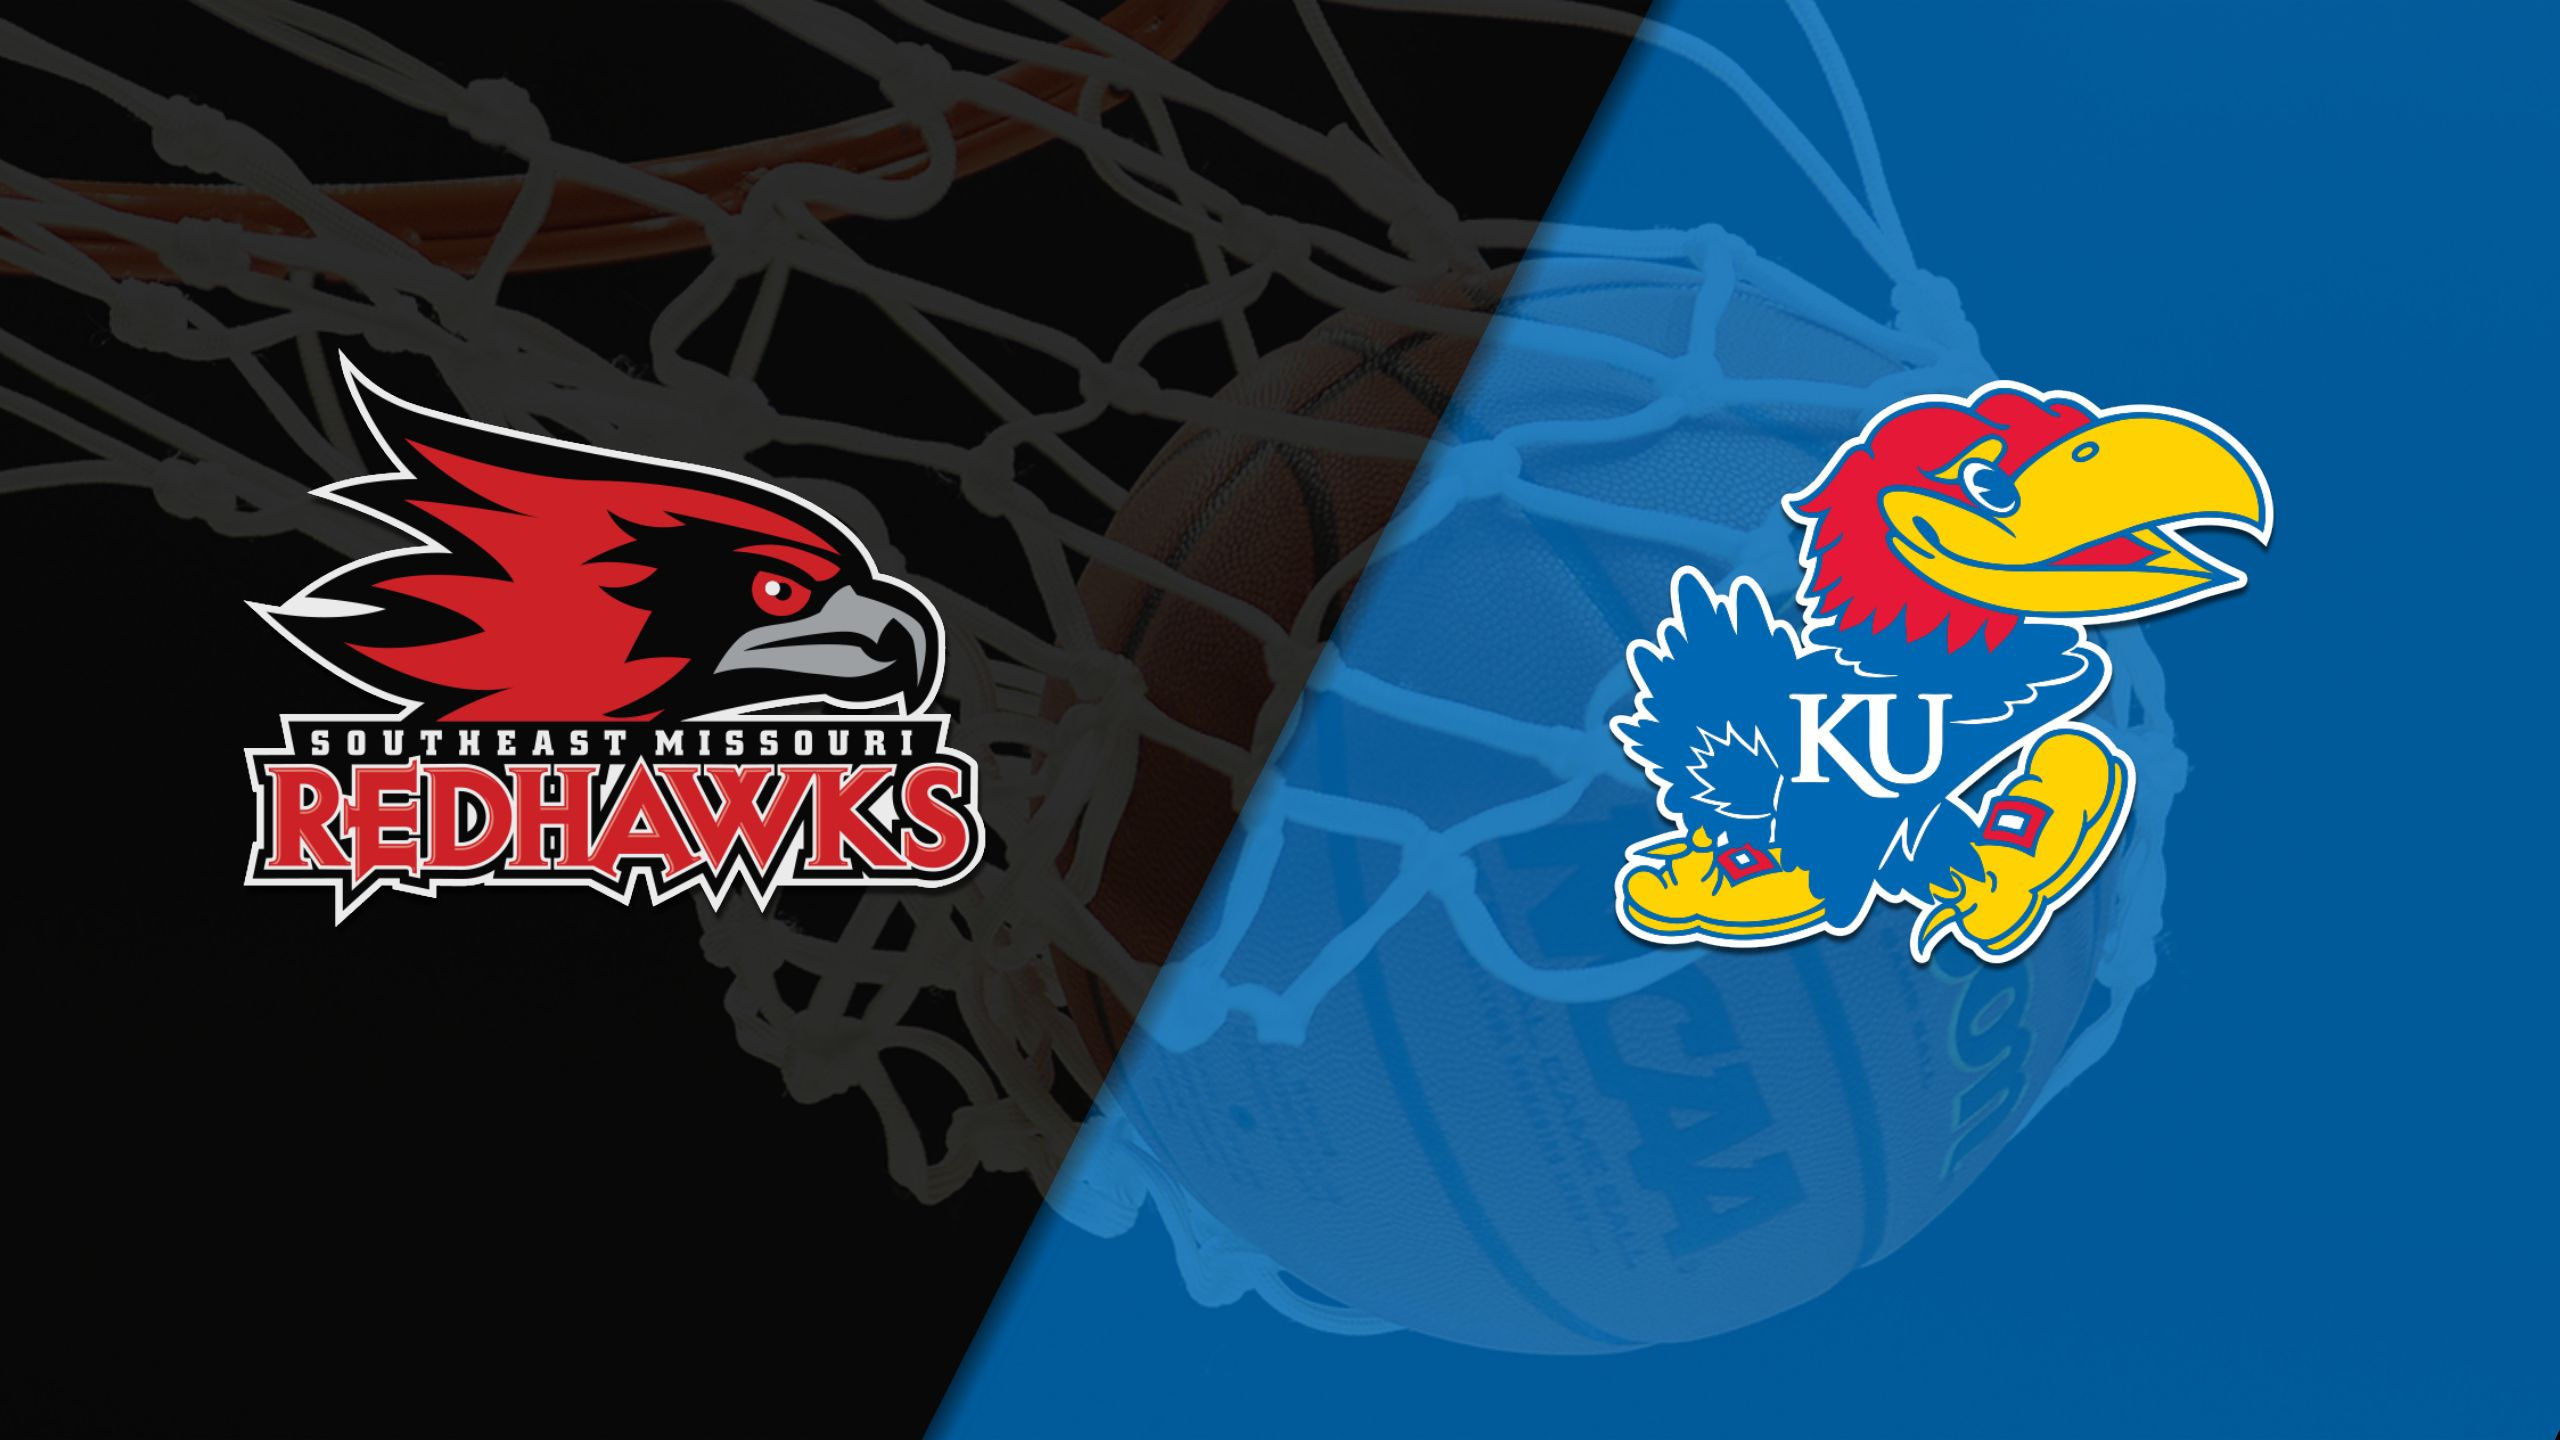 Southeast Missouri State vs. Kansas (W Basketball)